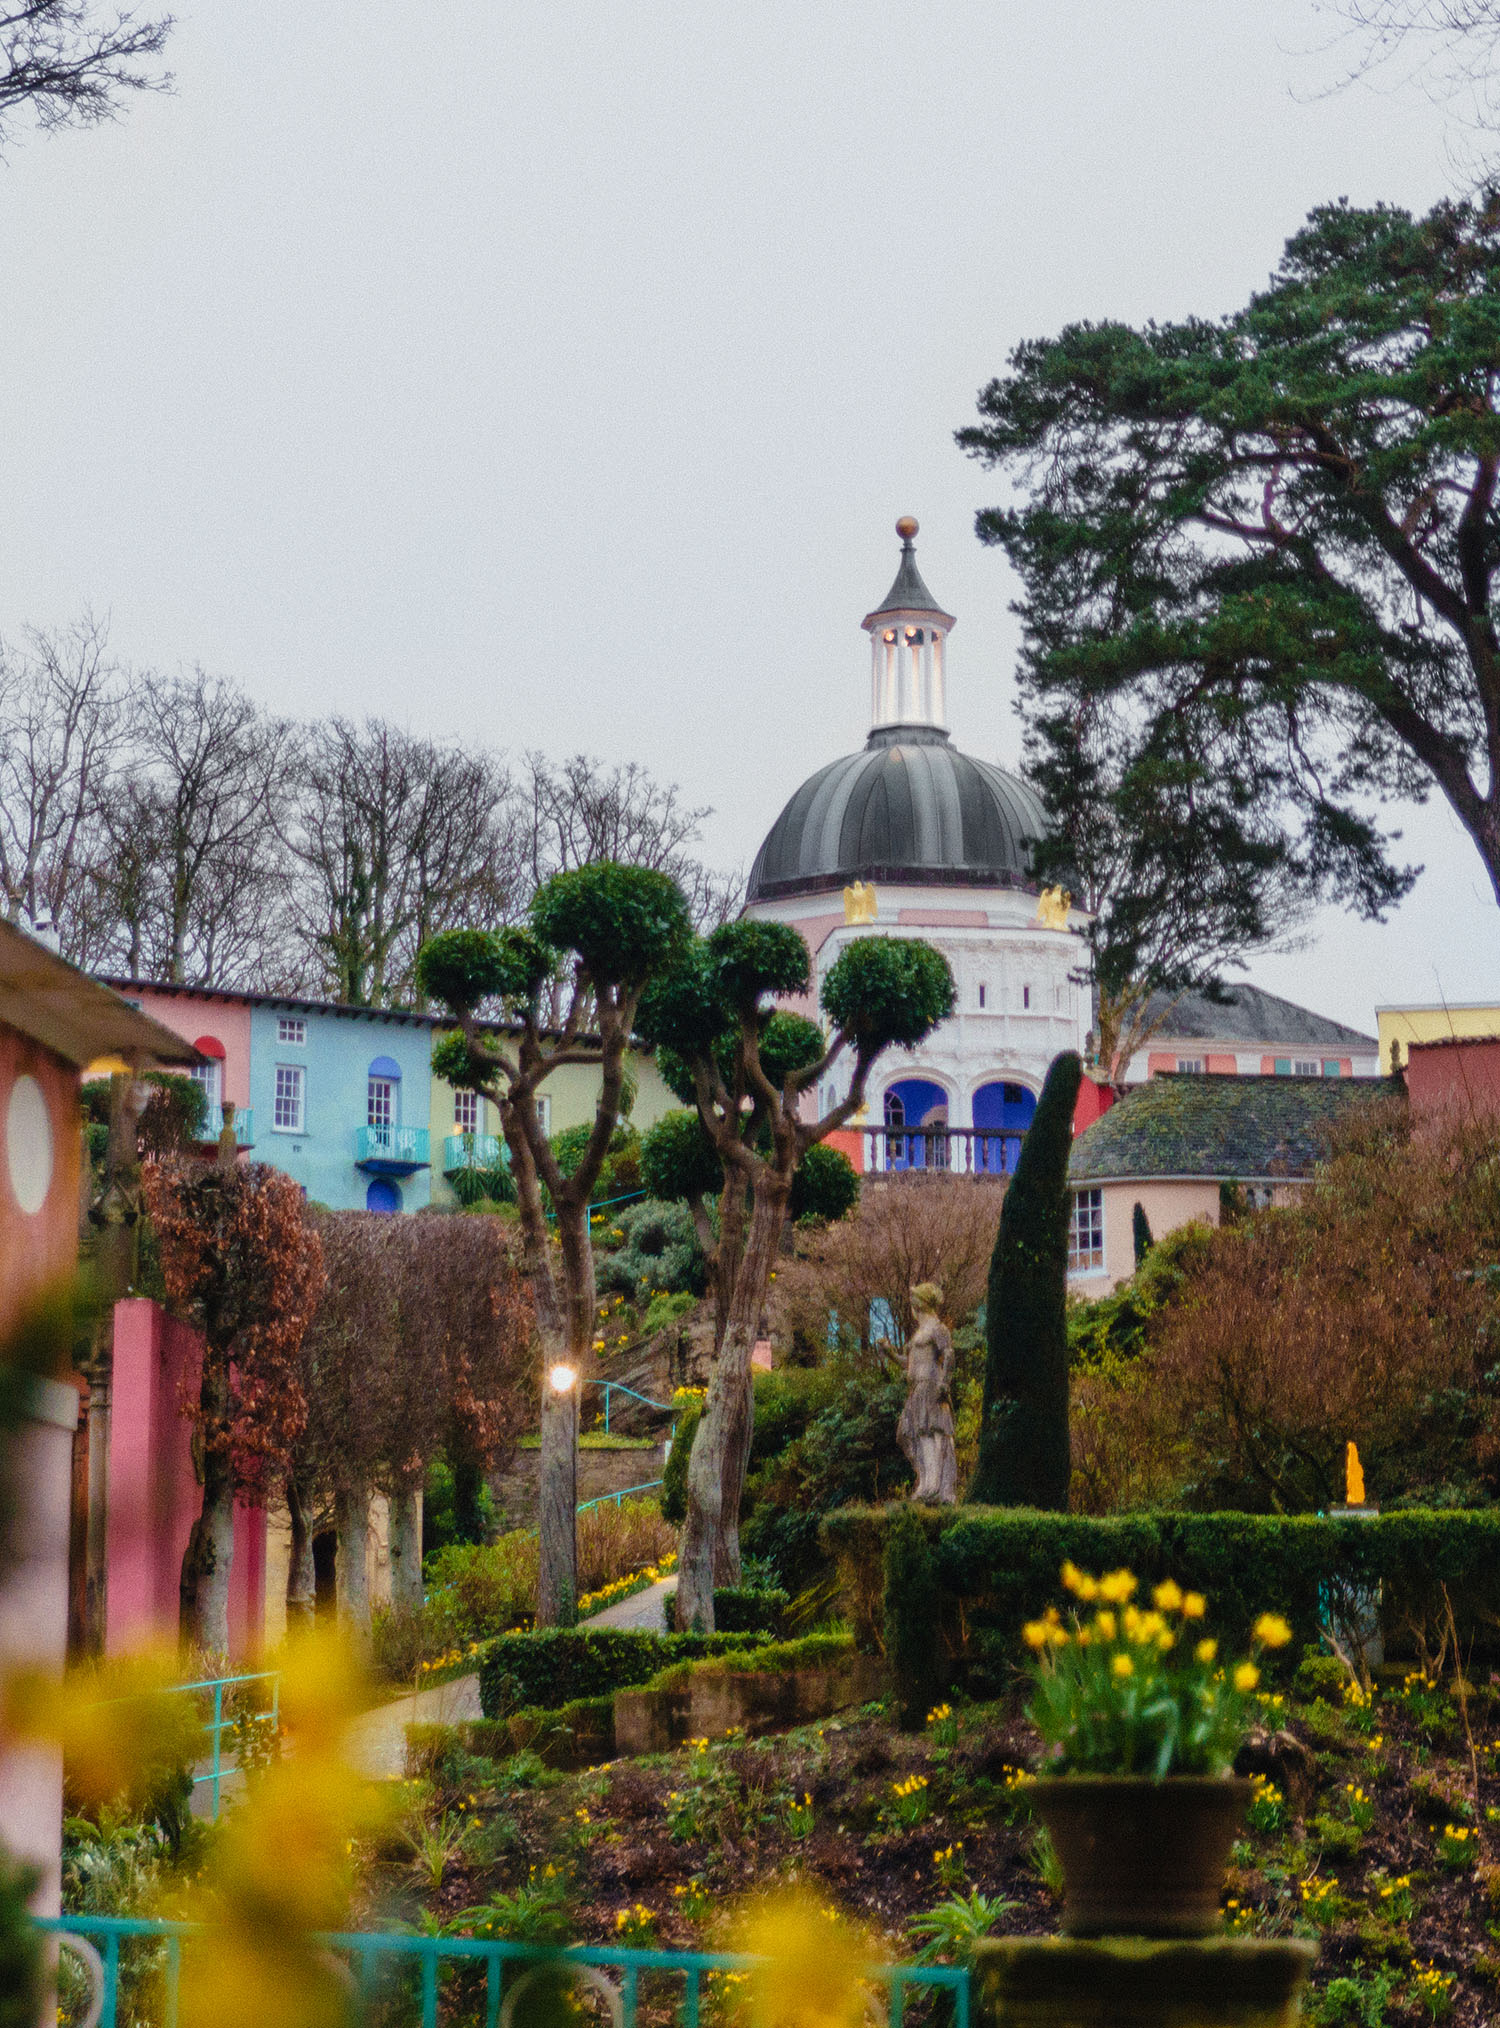 Portmeirion, Wales - Top Places to visit in Great Britain, UK